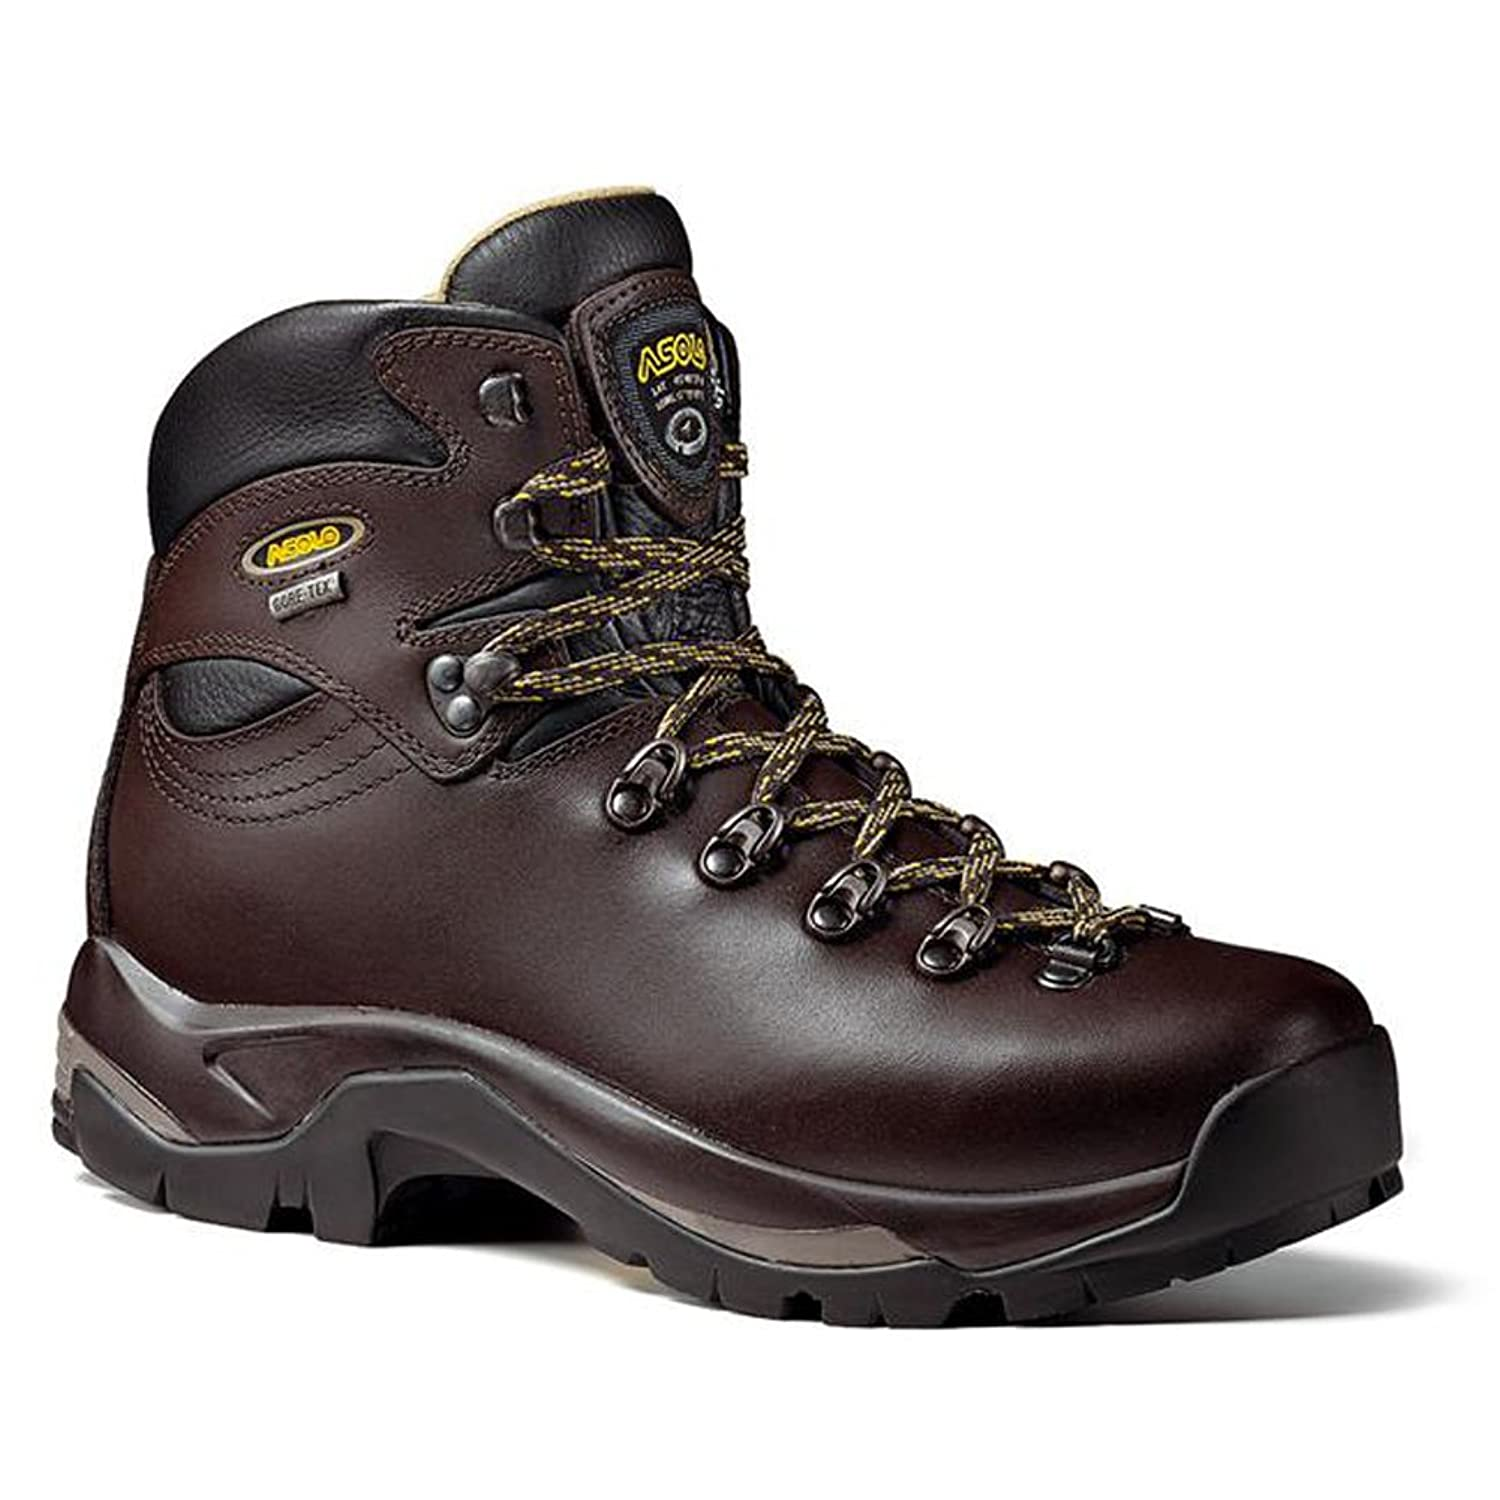 0M2066_635 Asolo Men's TPS 520 GV Hiking Boots - Chesnut